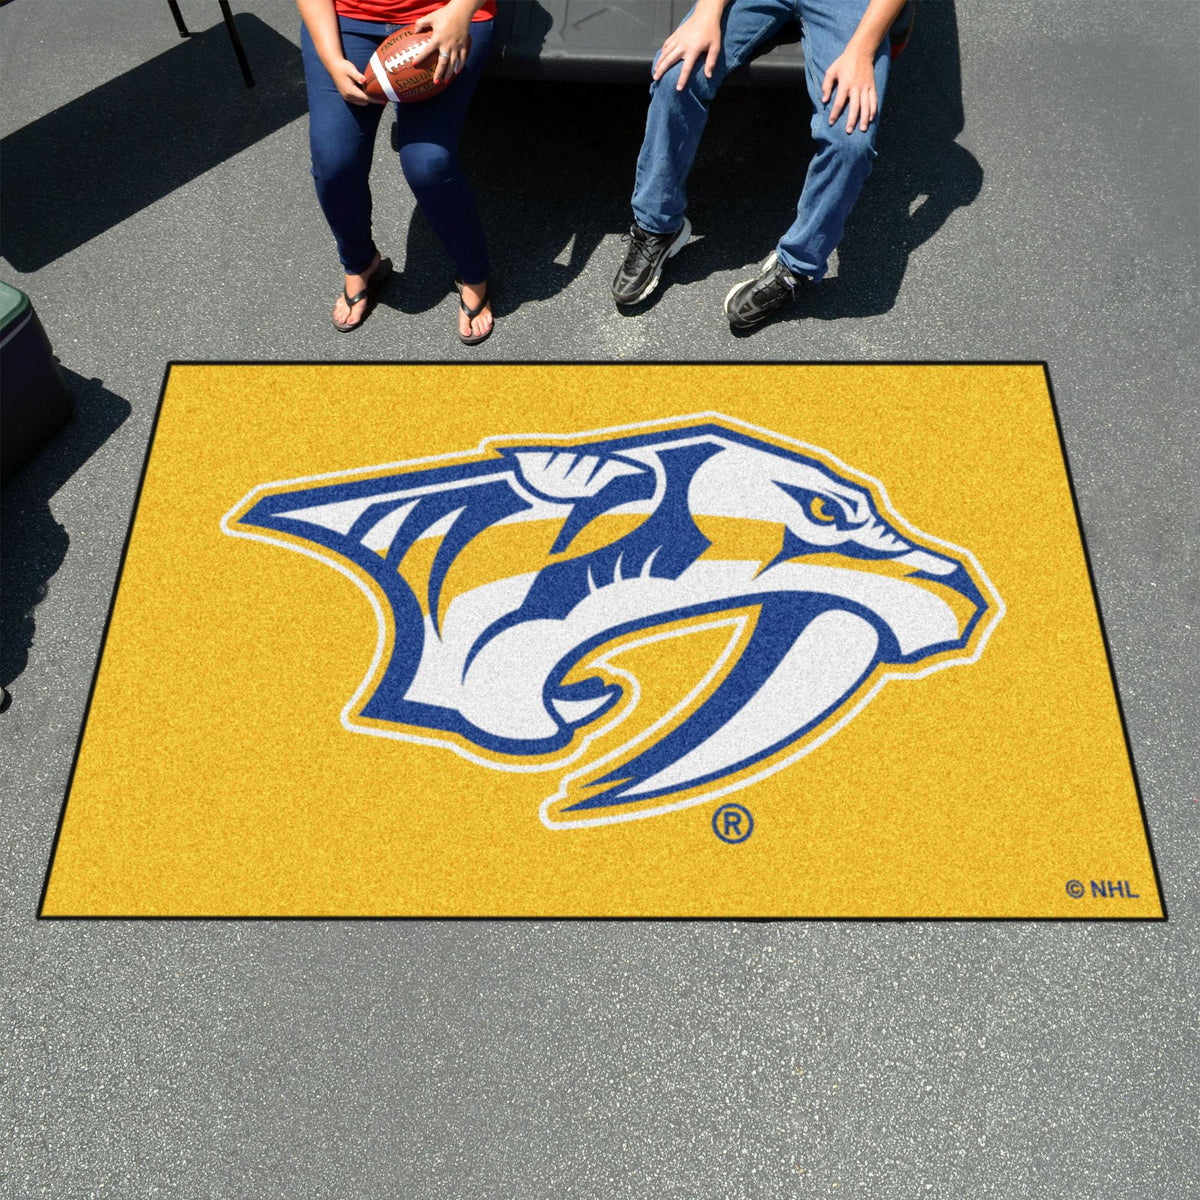 NHL - Ulti-Mat NHL Mats, Rectangular Mats, Ulti-Mat, NHL, Home Fan Mats Nashville Predators 2